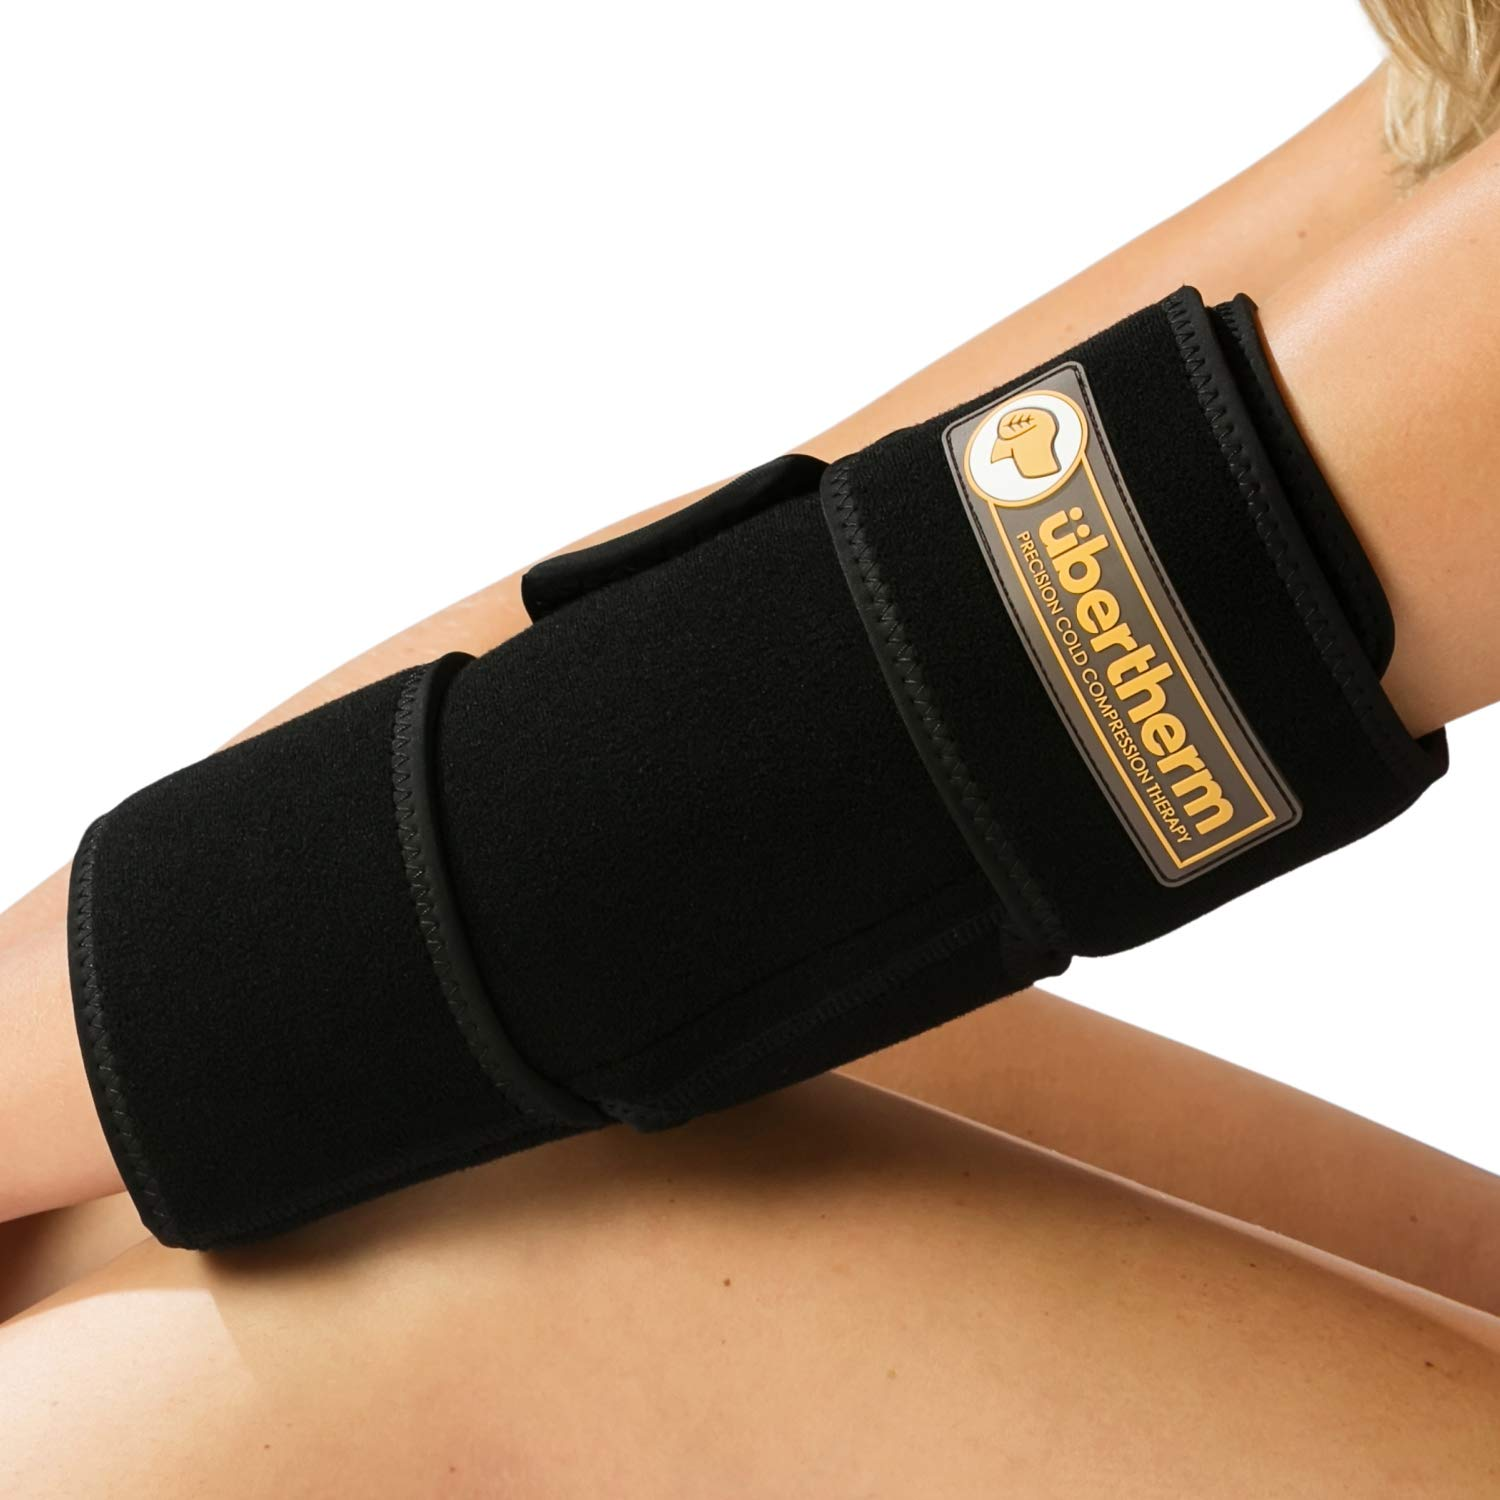 übertherm Elbow Pain Relief Cold Wrap: Heal Faster, Feel Better. Sting-Free Sports Icing by übertherm